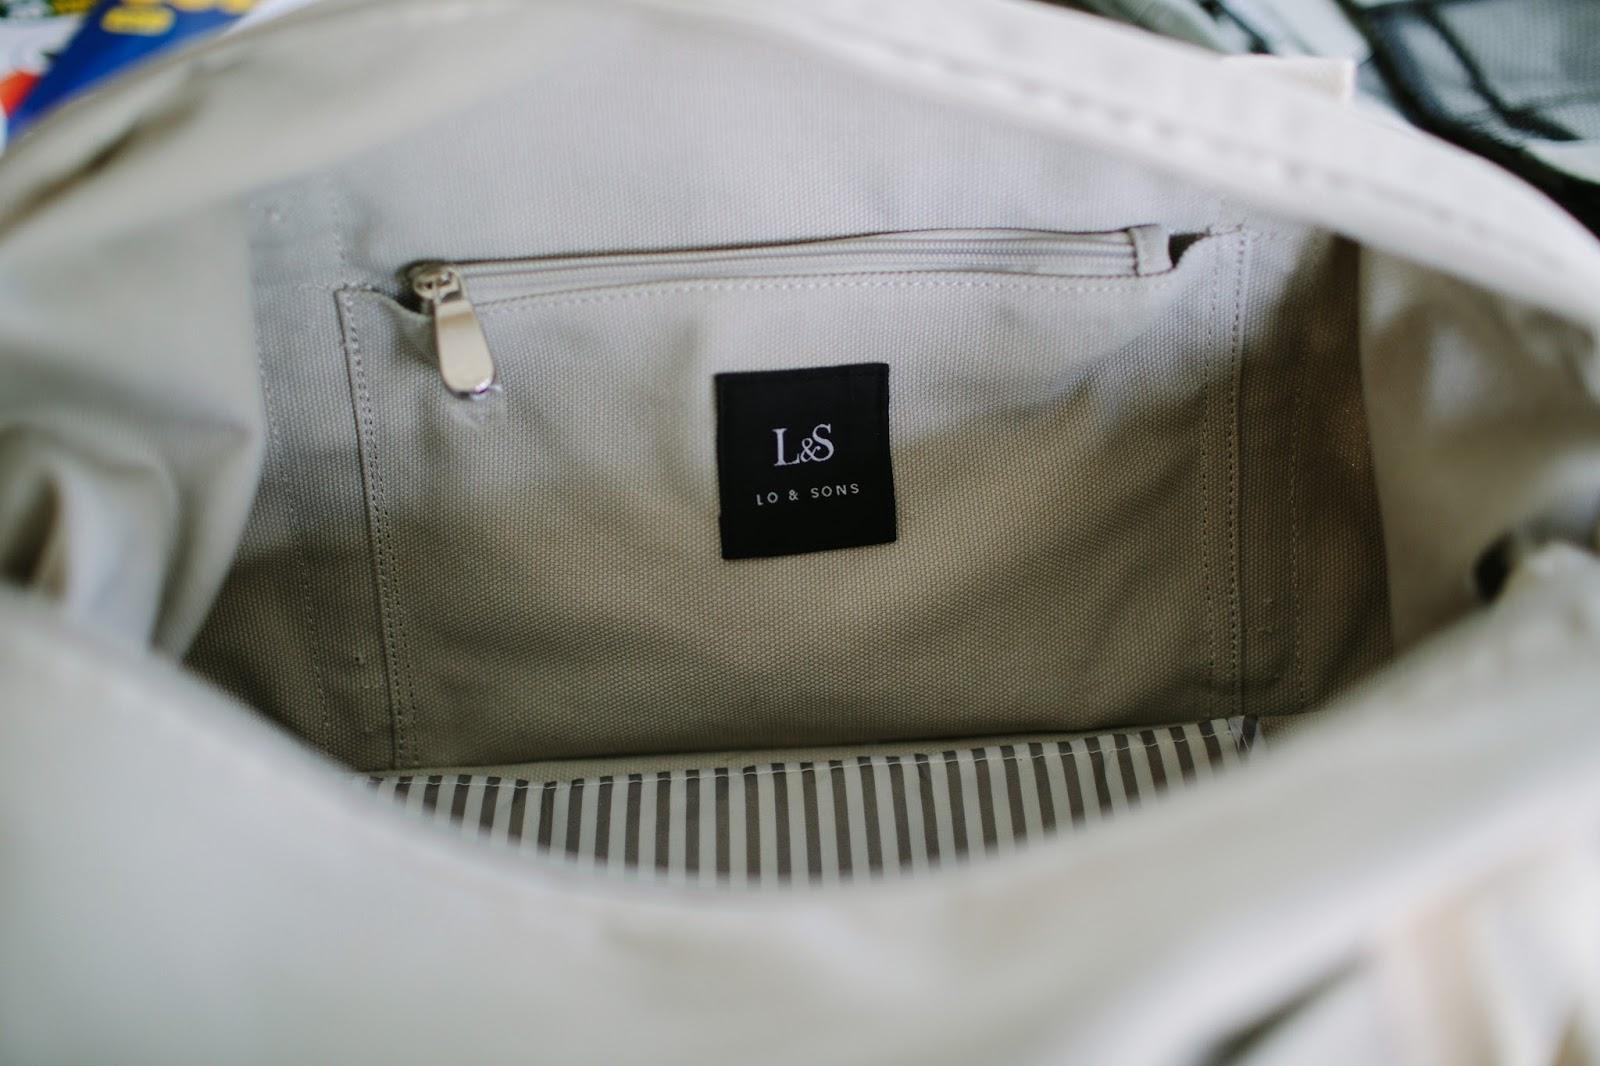 Lo and sons carry on bag